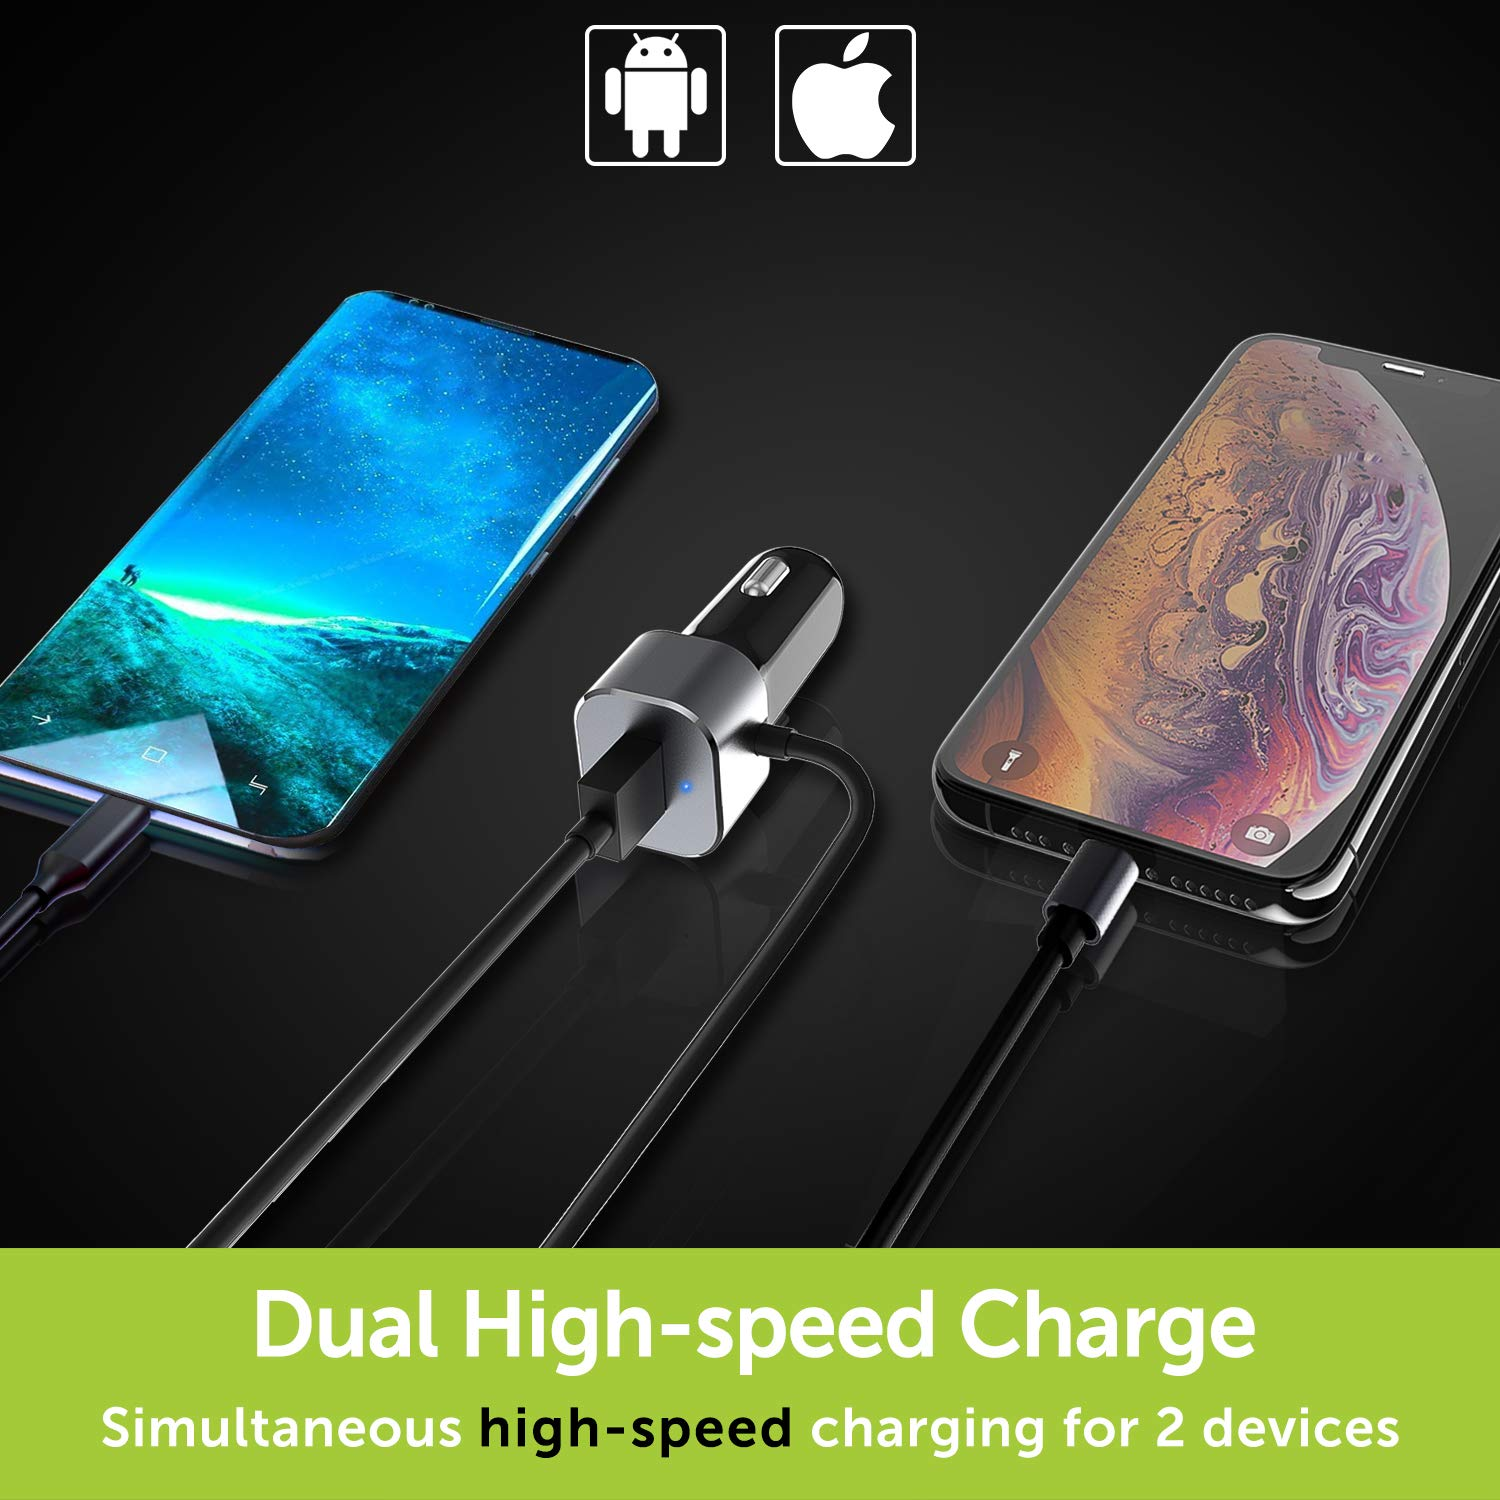 BrexLink 30W Charger Compact 12w iPhone Car Charger Apple MFI Certified iPhone X//XR//XS//Max//8//7//+,iPad Air 2,Samsung S10//S9//S8 4351487244 Lightning Charging Cable and 18W Quick Charger 3.0 Port Compatible w